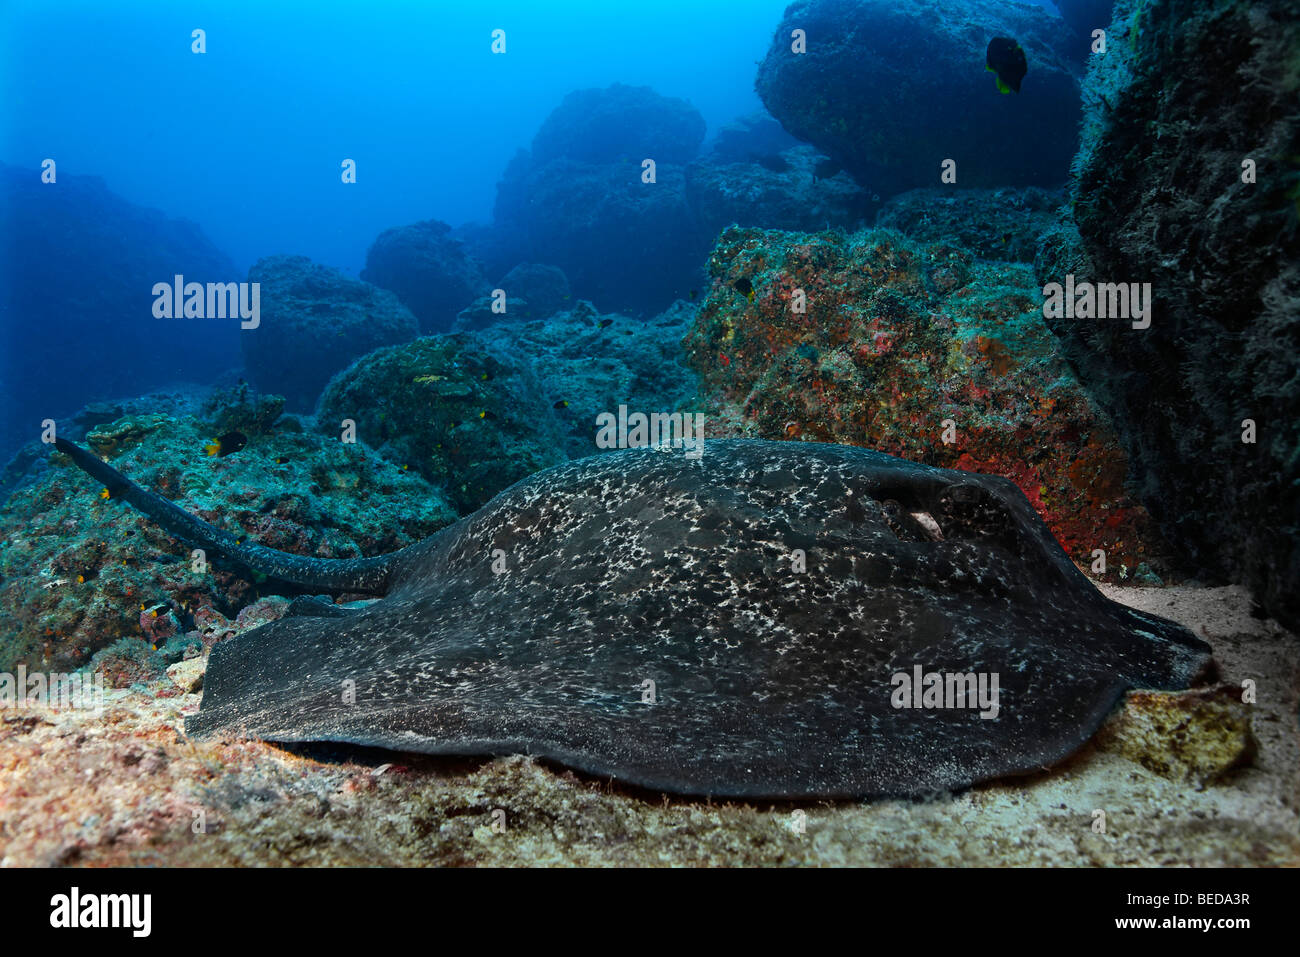 Two Blackspotted Sting rays (Taeniura meyeni), resting, reef, Cocos Island, Costa Rica, Central America, Pacific - Stock Image